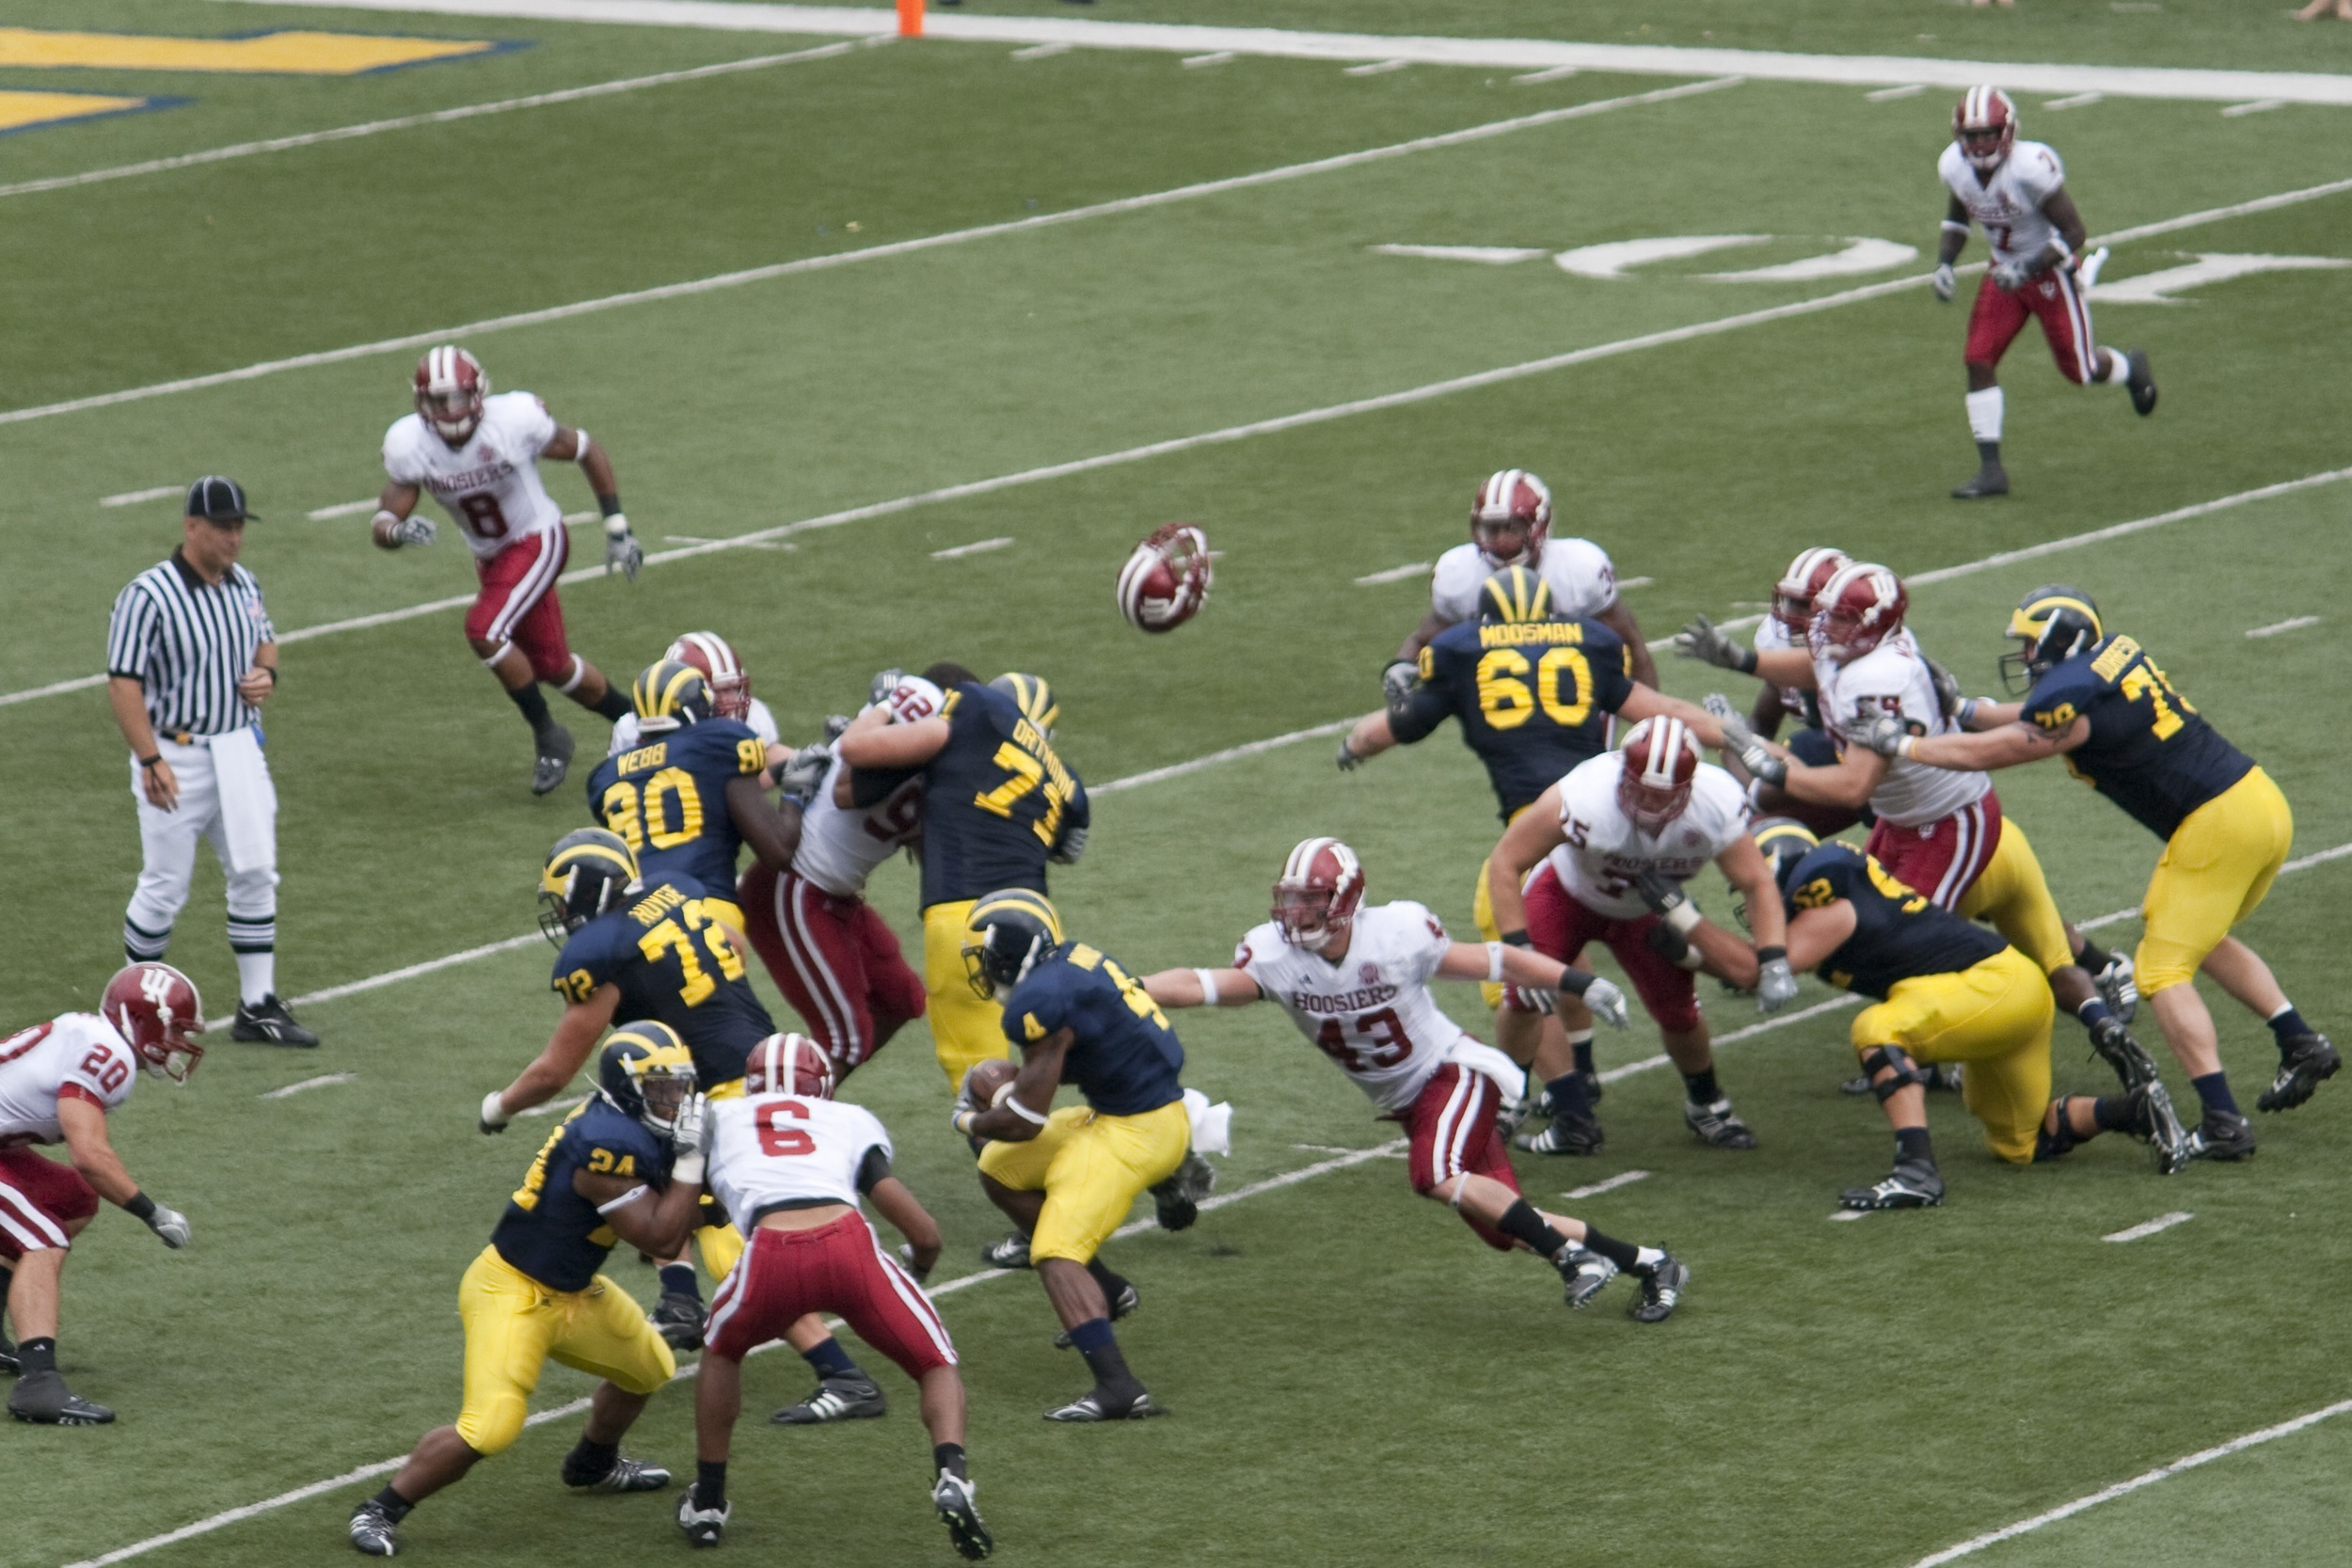 The pads will being popping up in Ann Arbor today as the Indiana defense looks to rebound after a loss last week